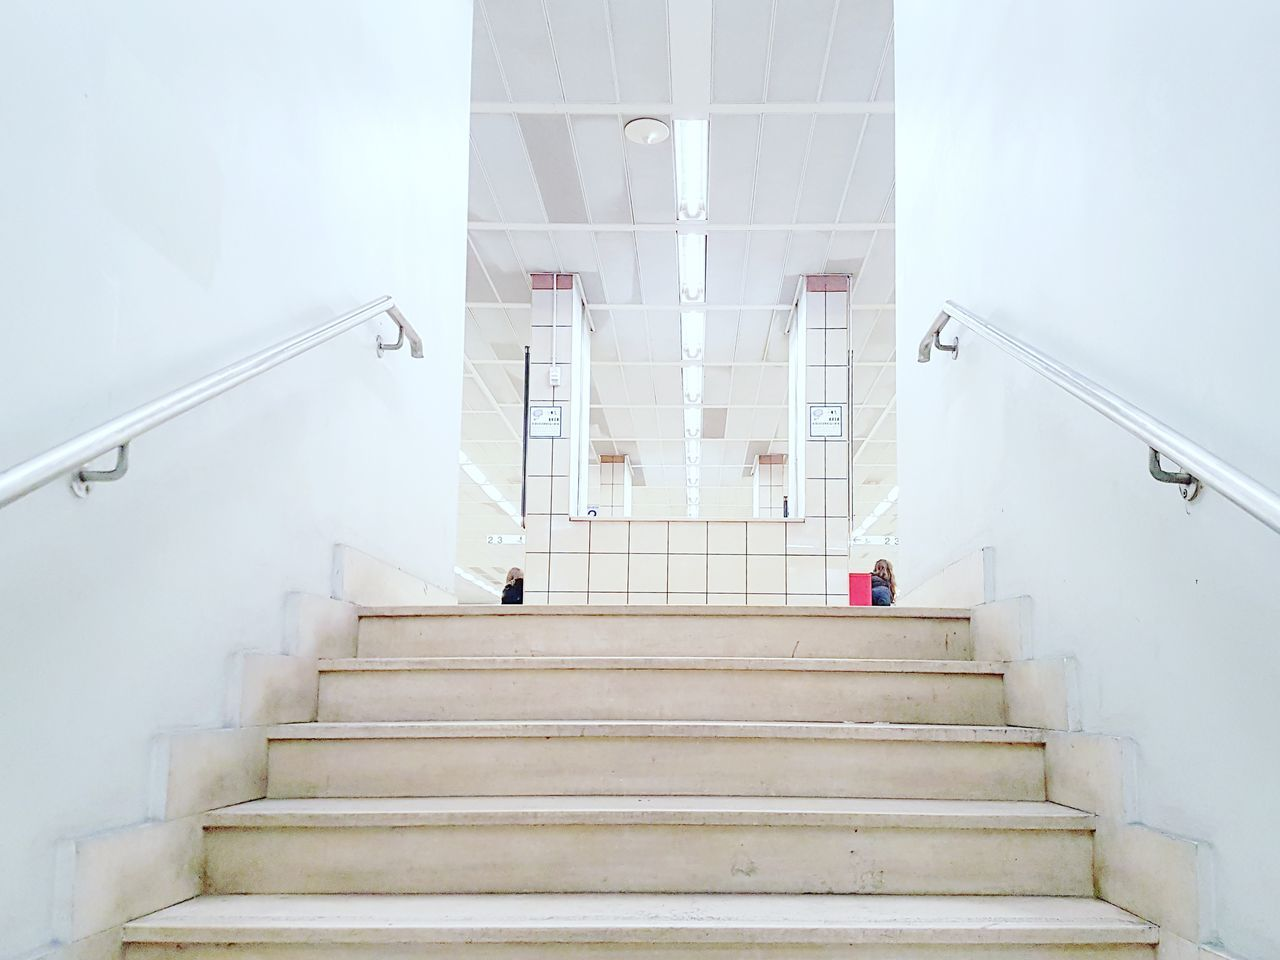 Steps And Staircases Staircase Low Angle View The Way Forward No People Architecture Minimalist Architecture Minimalist Minimalobsession Minimalist Photography  Minimalism Architecture Architecture_collection Architectural Detail Archilovers Week On Eyeem EyeEm New Here Stairs_collection